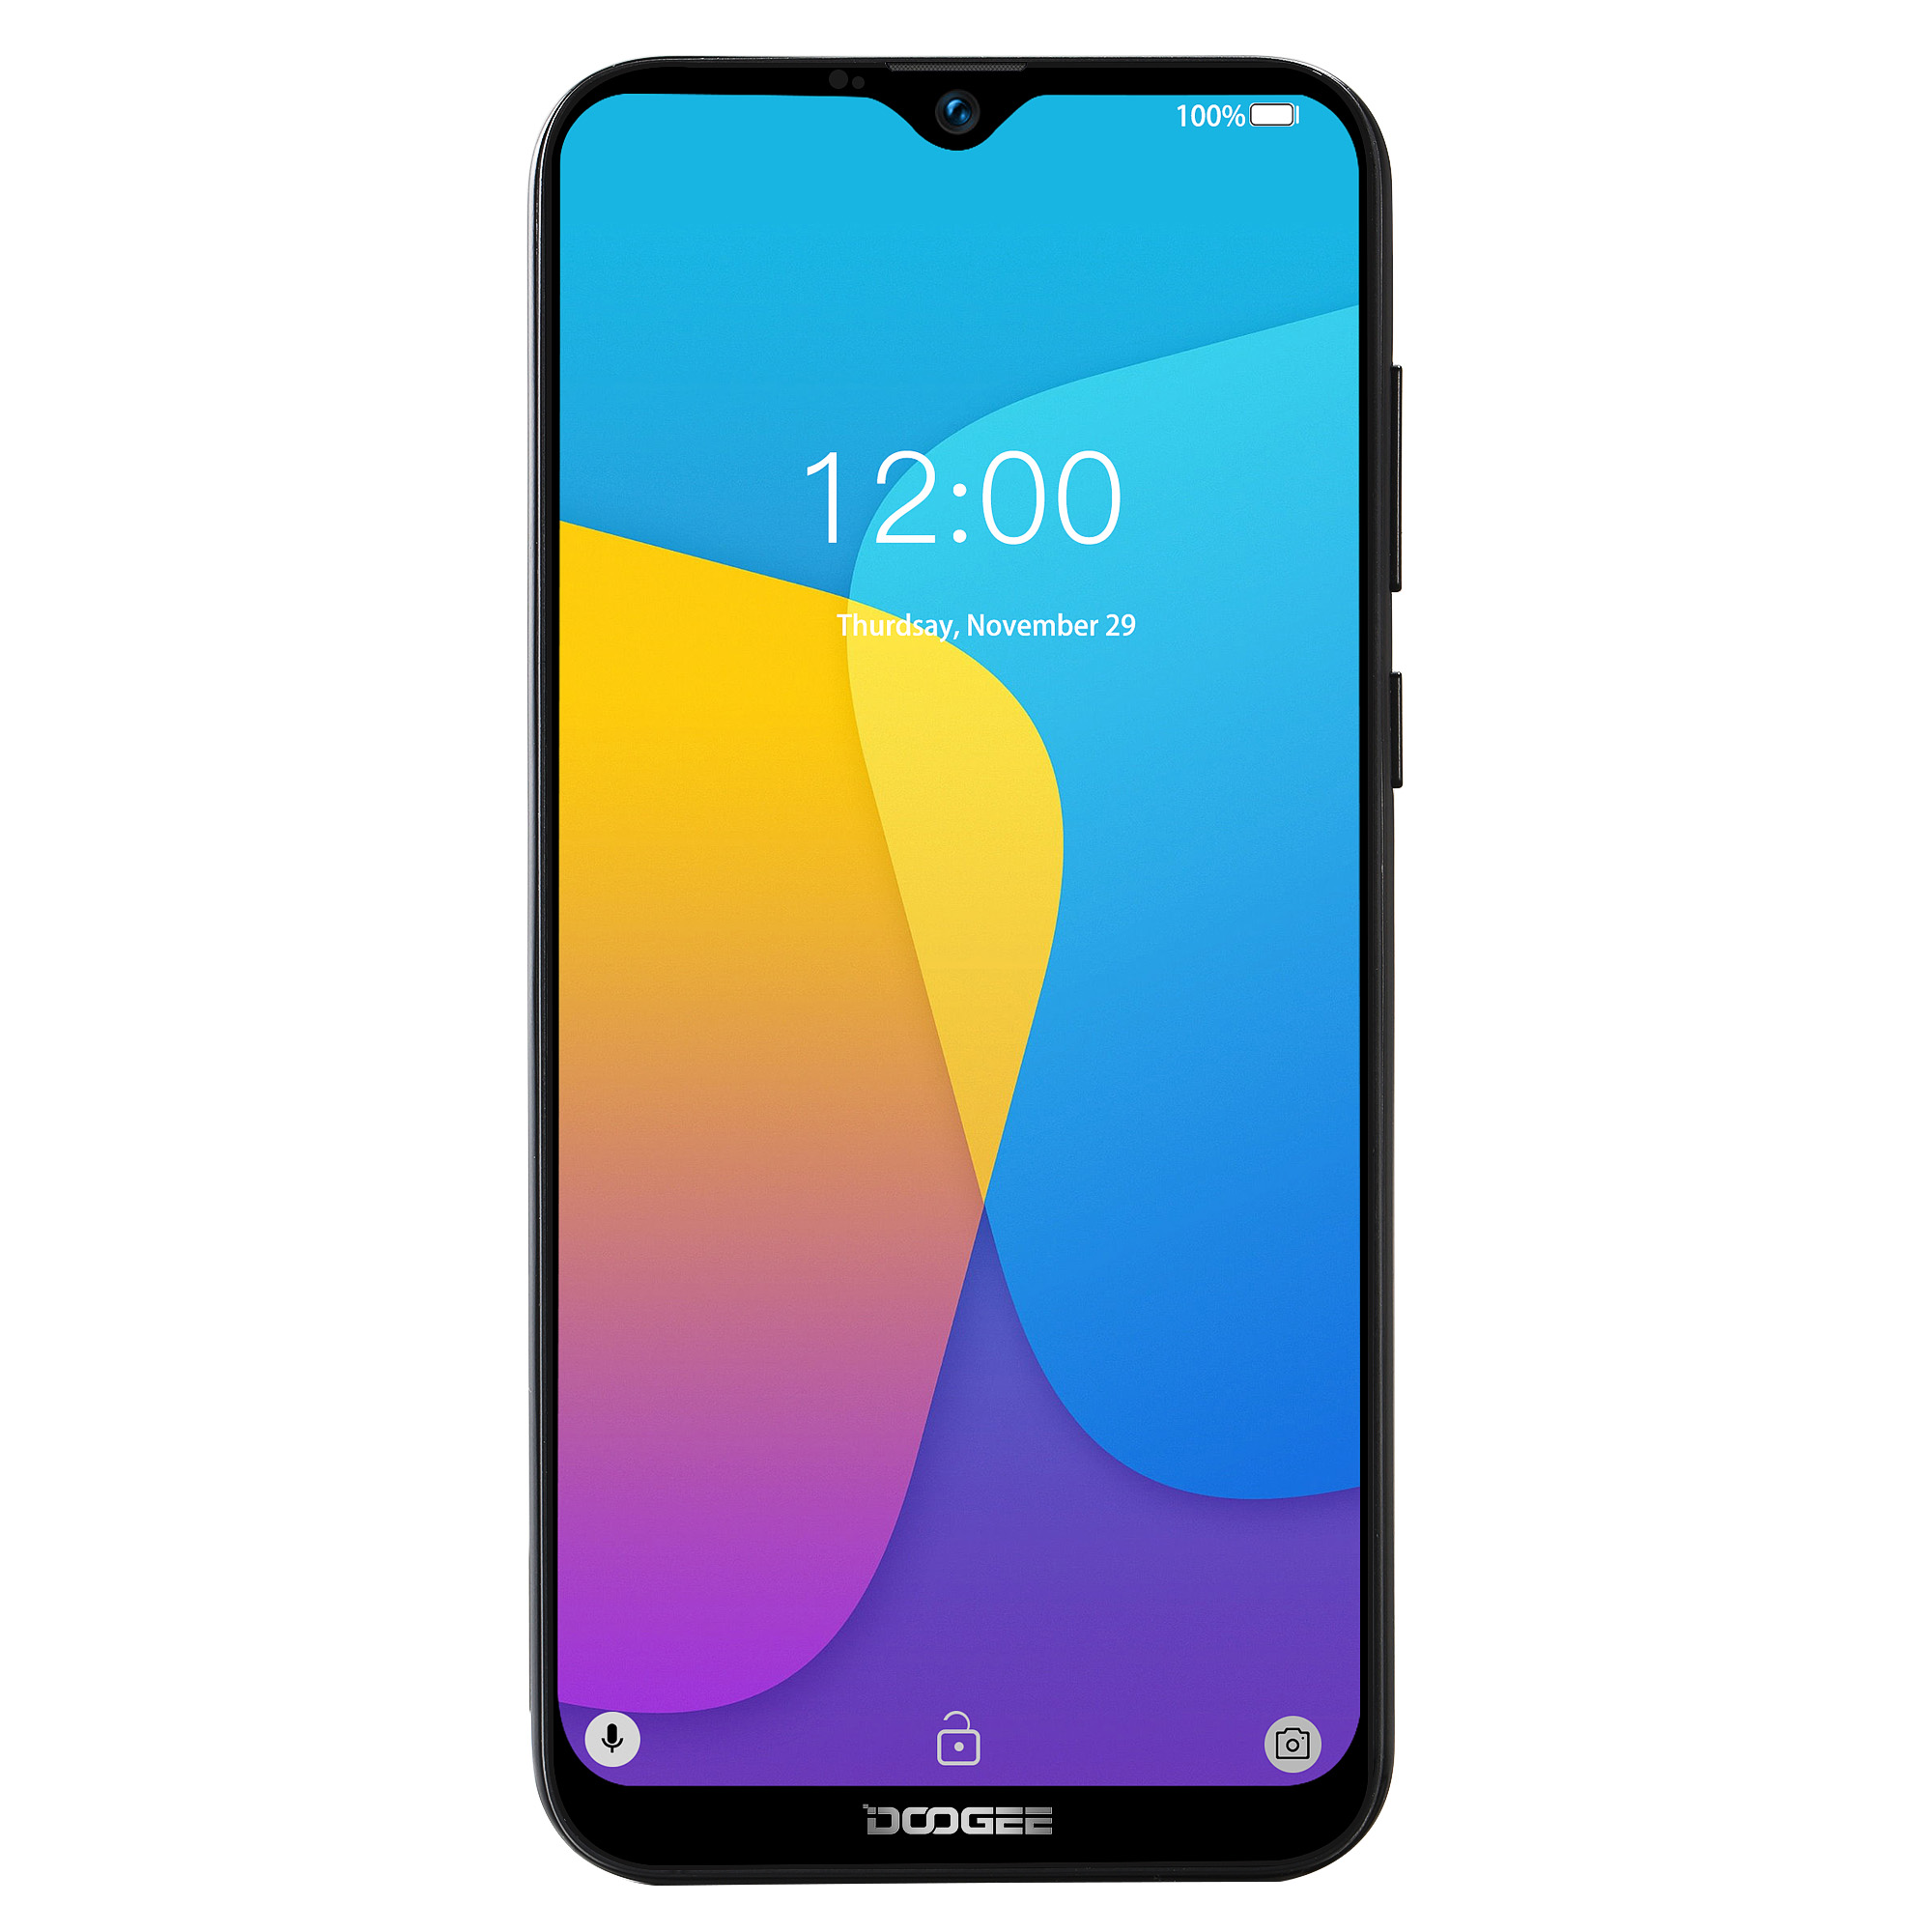 DOOGEE X90 Cellphone 6.1inch 19:9 Waterdrop LTPS Screen Smartphone Quad Core CPU 1GB RAM+16GB ROM 3400mAh Battery Dual SIM Cards 8MP+5MP Camera Android 8.1 OS  Black_Non-European version